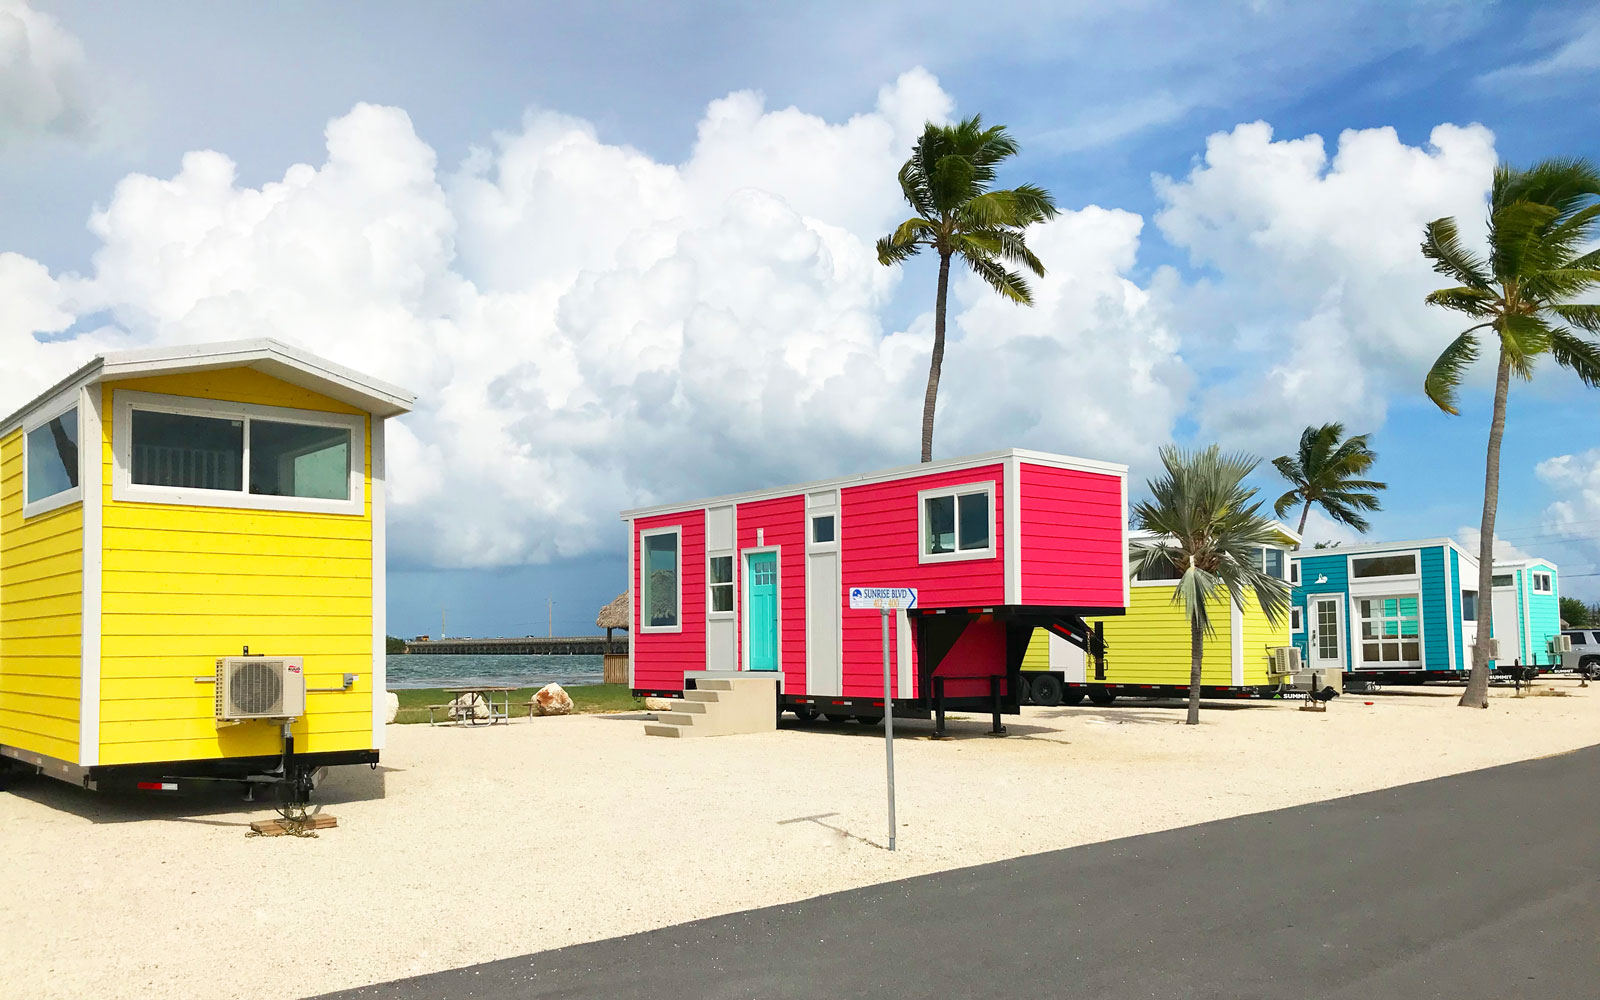 Sunshine Key Tiny House Village